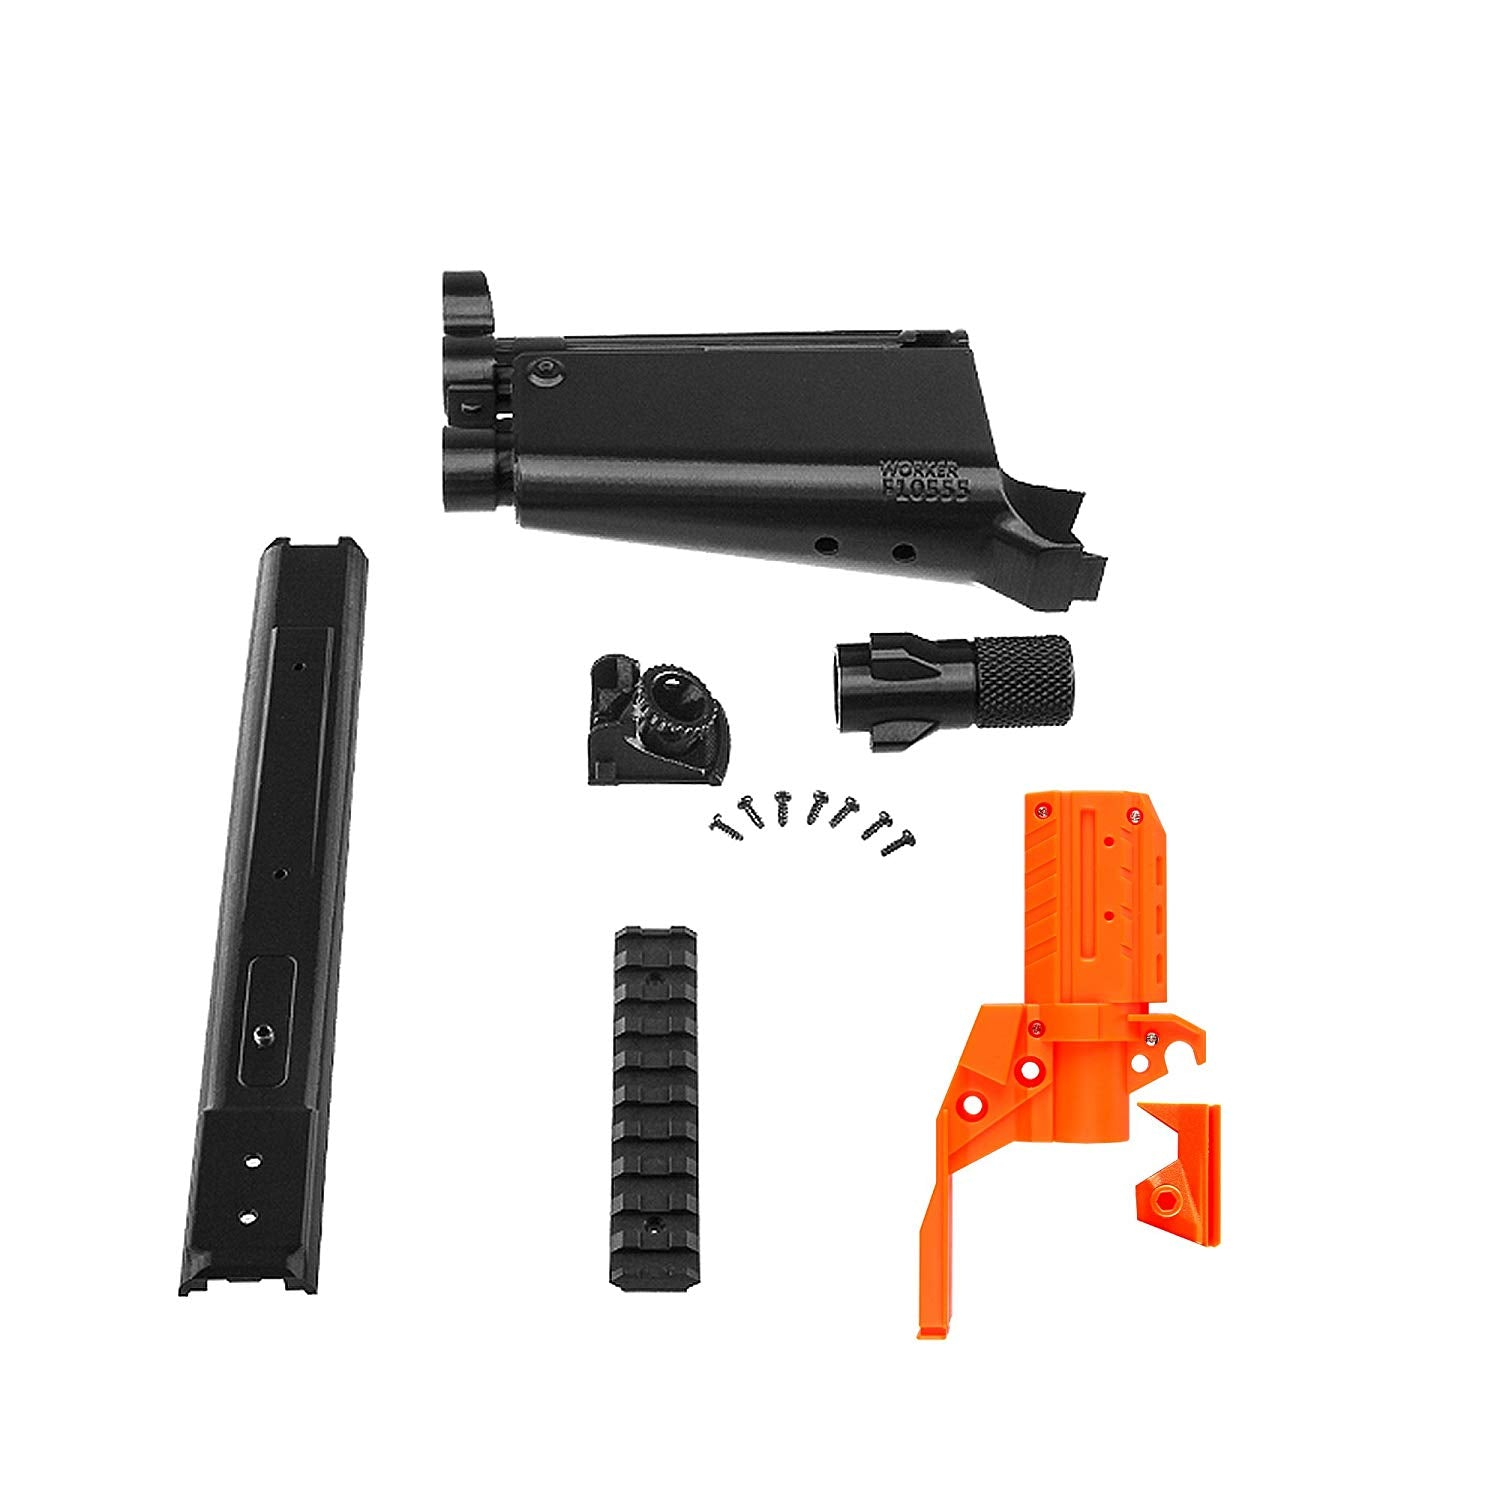 JGCWorker F10555 No.114 3D Printing MP5-A Front Tube Kits With Adaptor for Nerf N-Strike Stryfe Color Black - Nerf Mod Kits -Worker Mod Kits